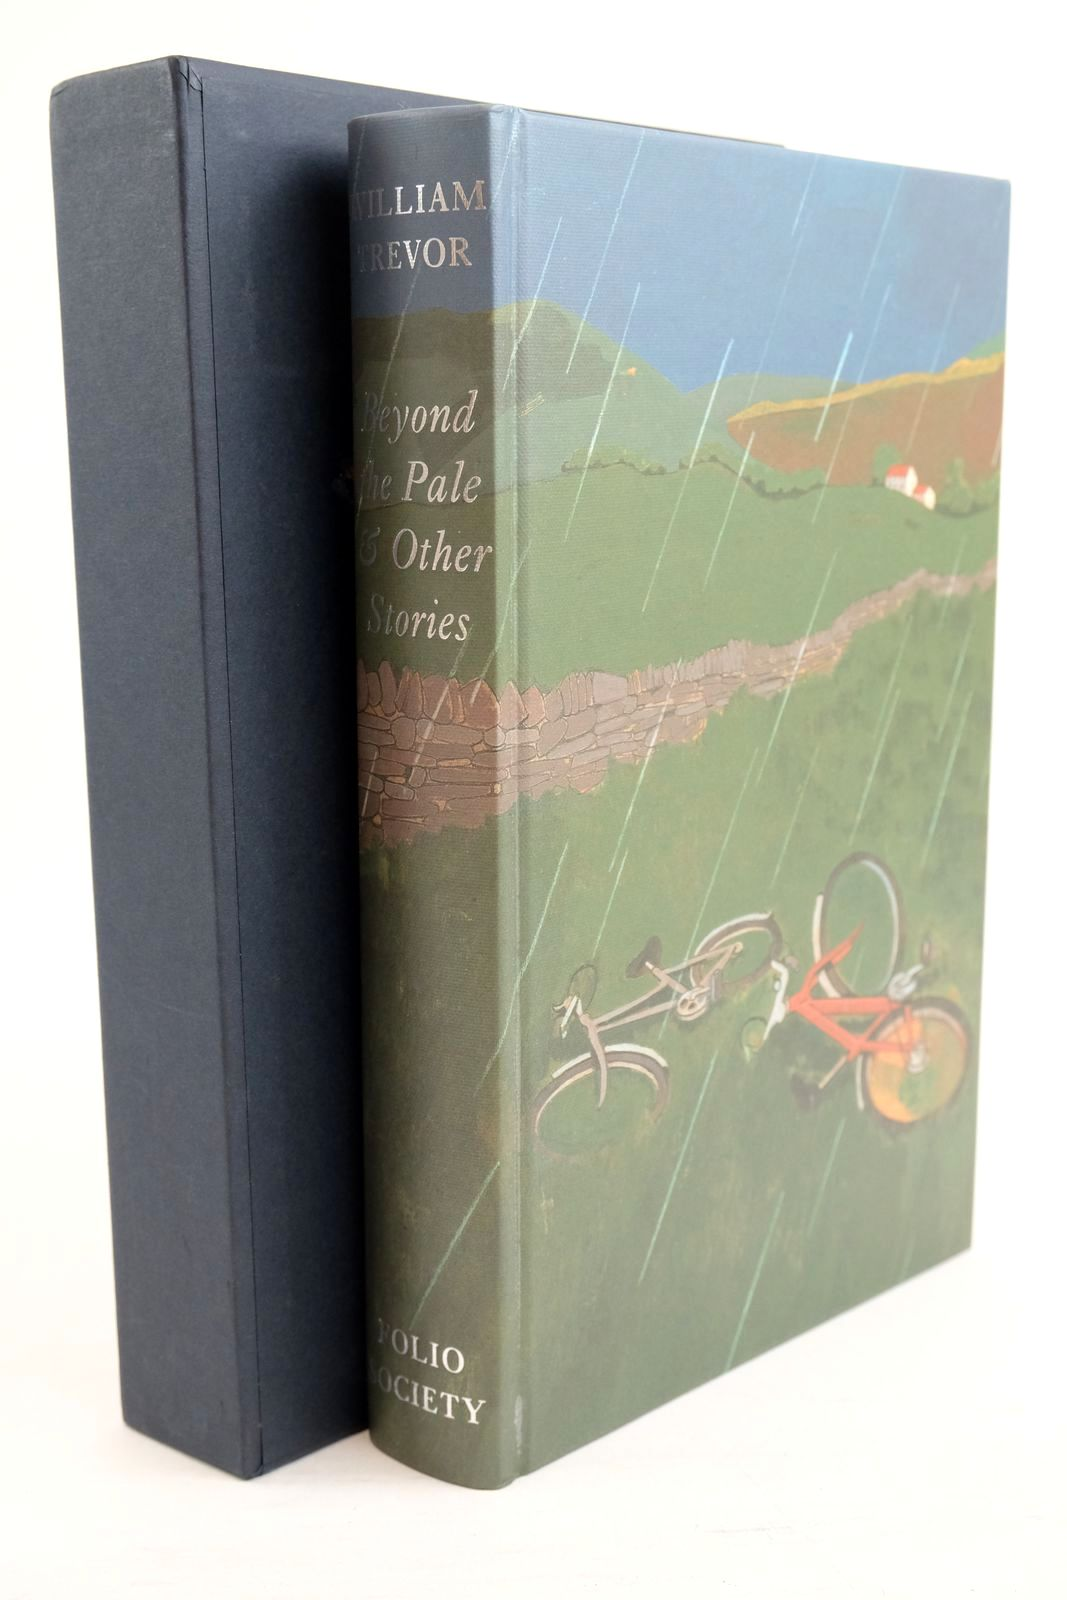 Photo of BEYOND THE PALE & OTHER STORIES written by Trevor, William illustrated by Hayes, Lyndon published by Folio Society (STOCK CODE: 1320930)  for sale by Stella & Rose's Books